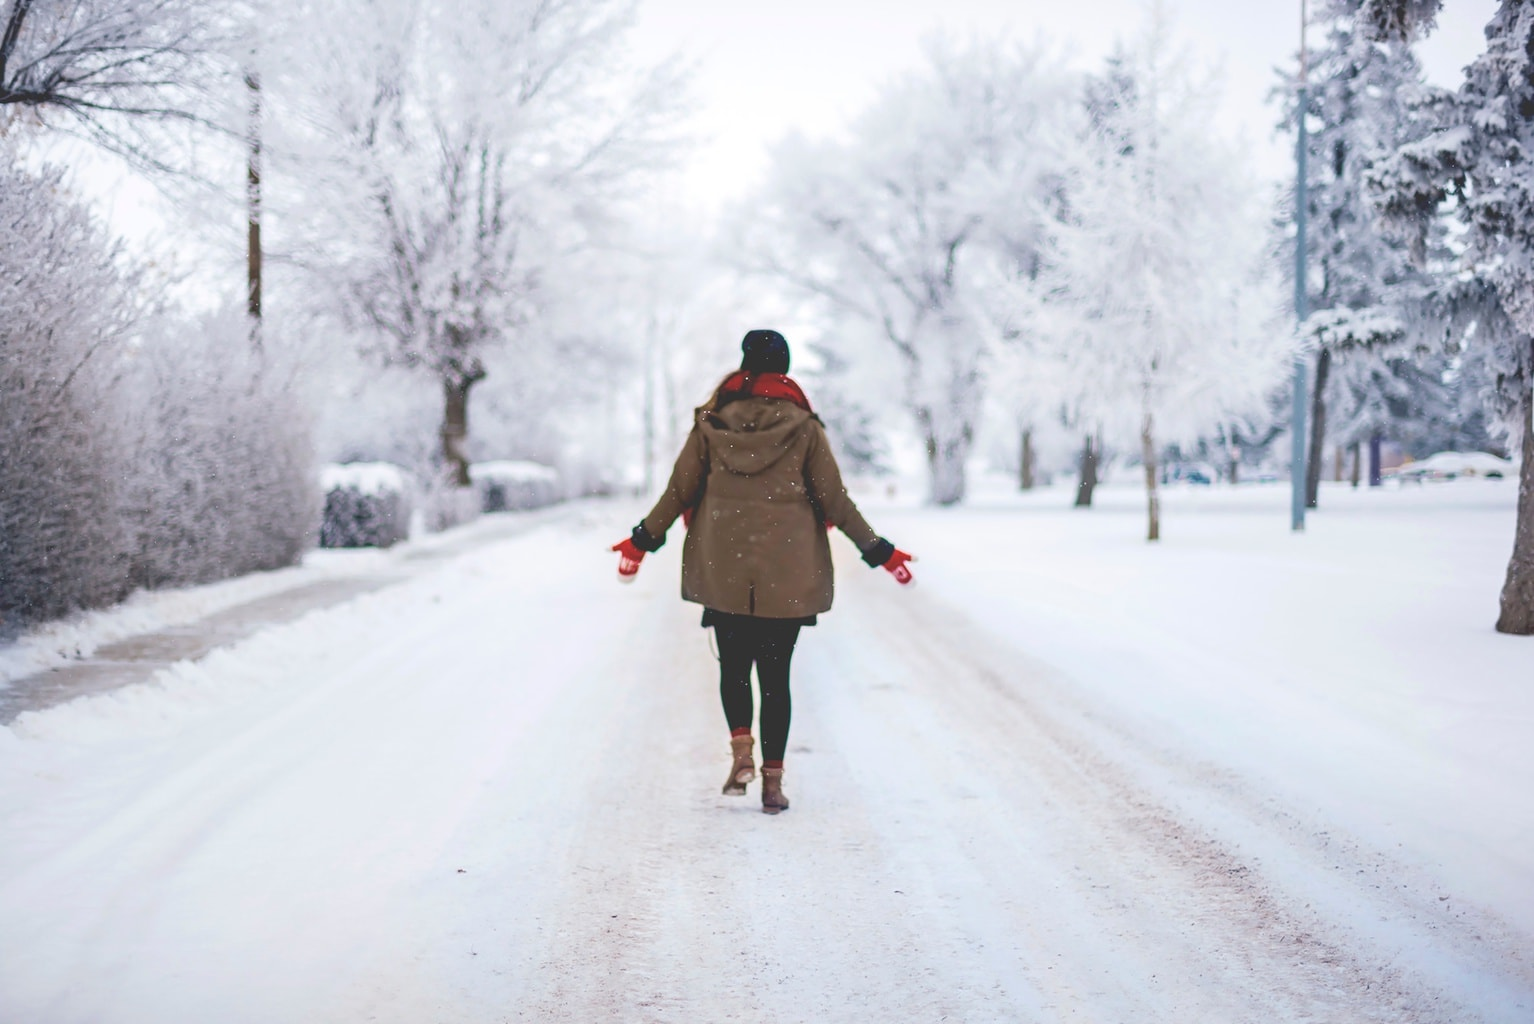 What to wear in winter weather